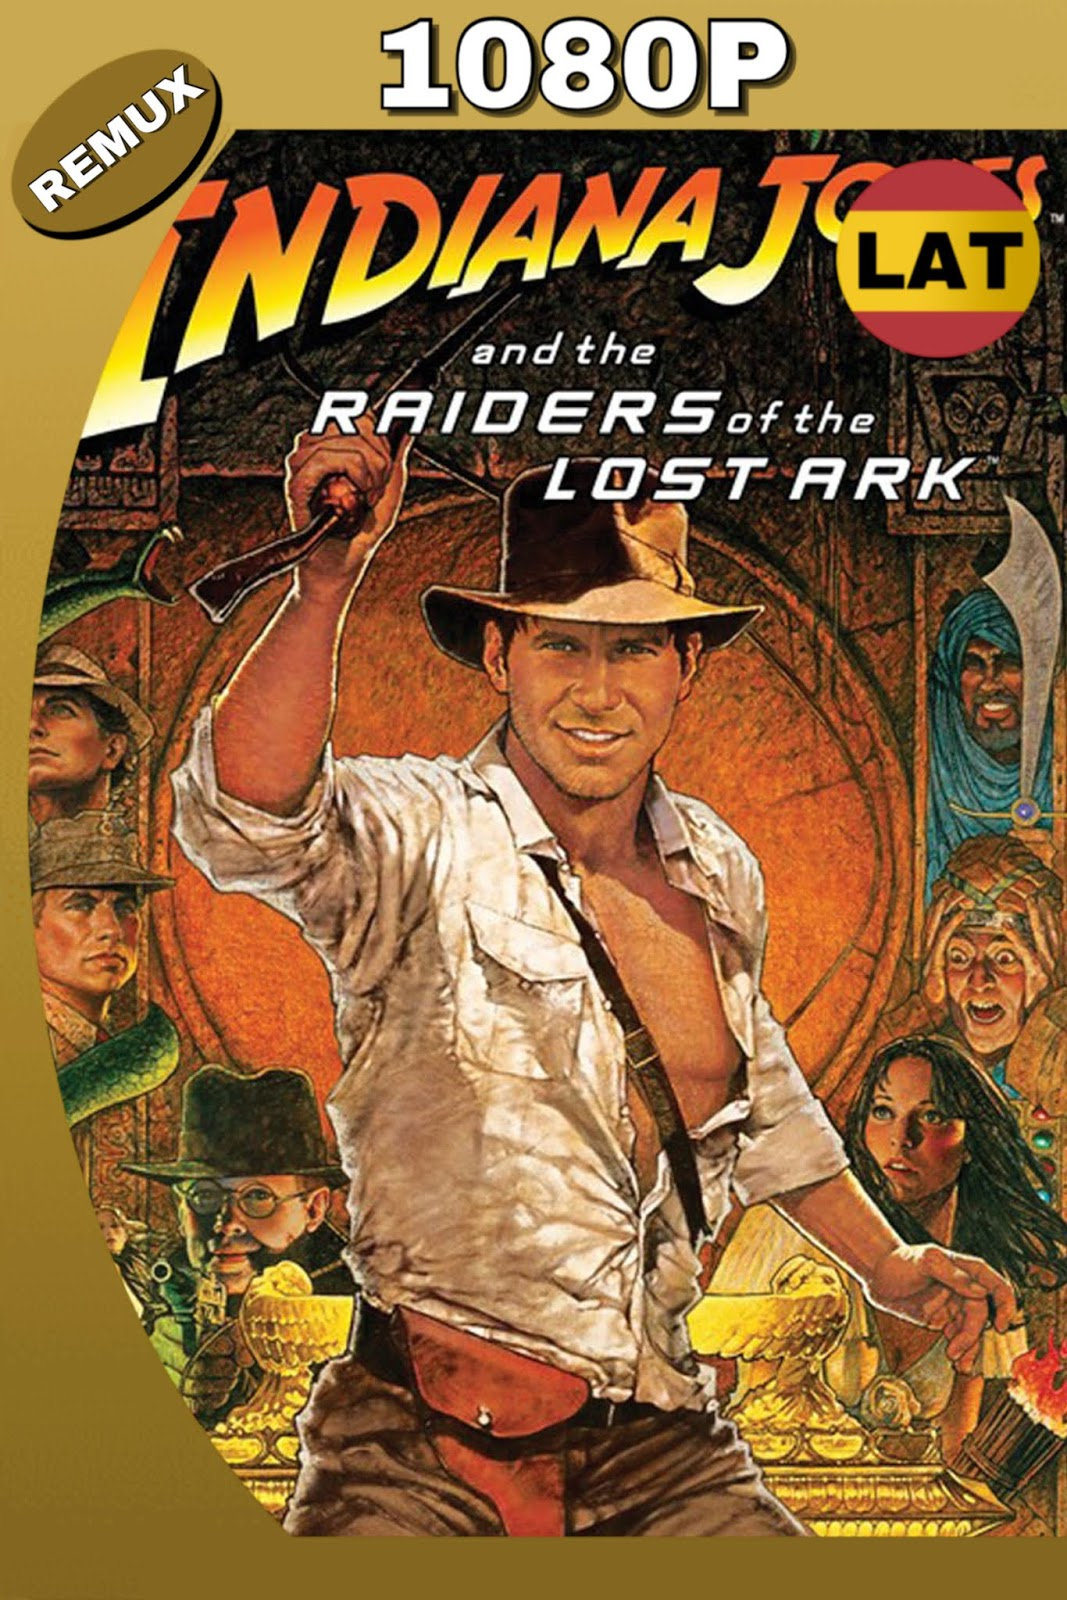 INDIANA JONES AND THE RAIDERS OF THE LOST ARK 1981 LAT-ING HD BDREMUX 1080P 34GB.mkv